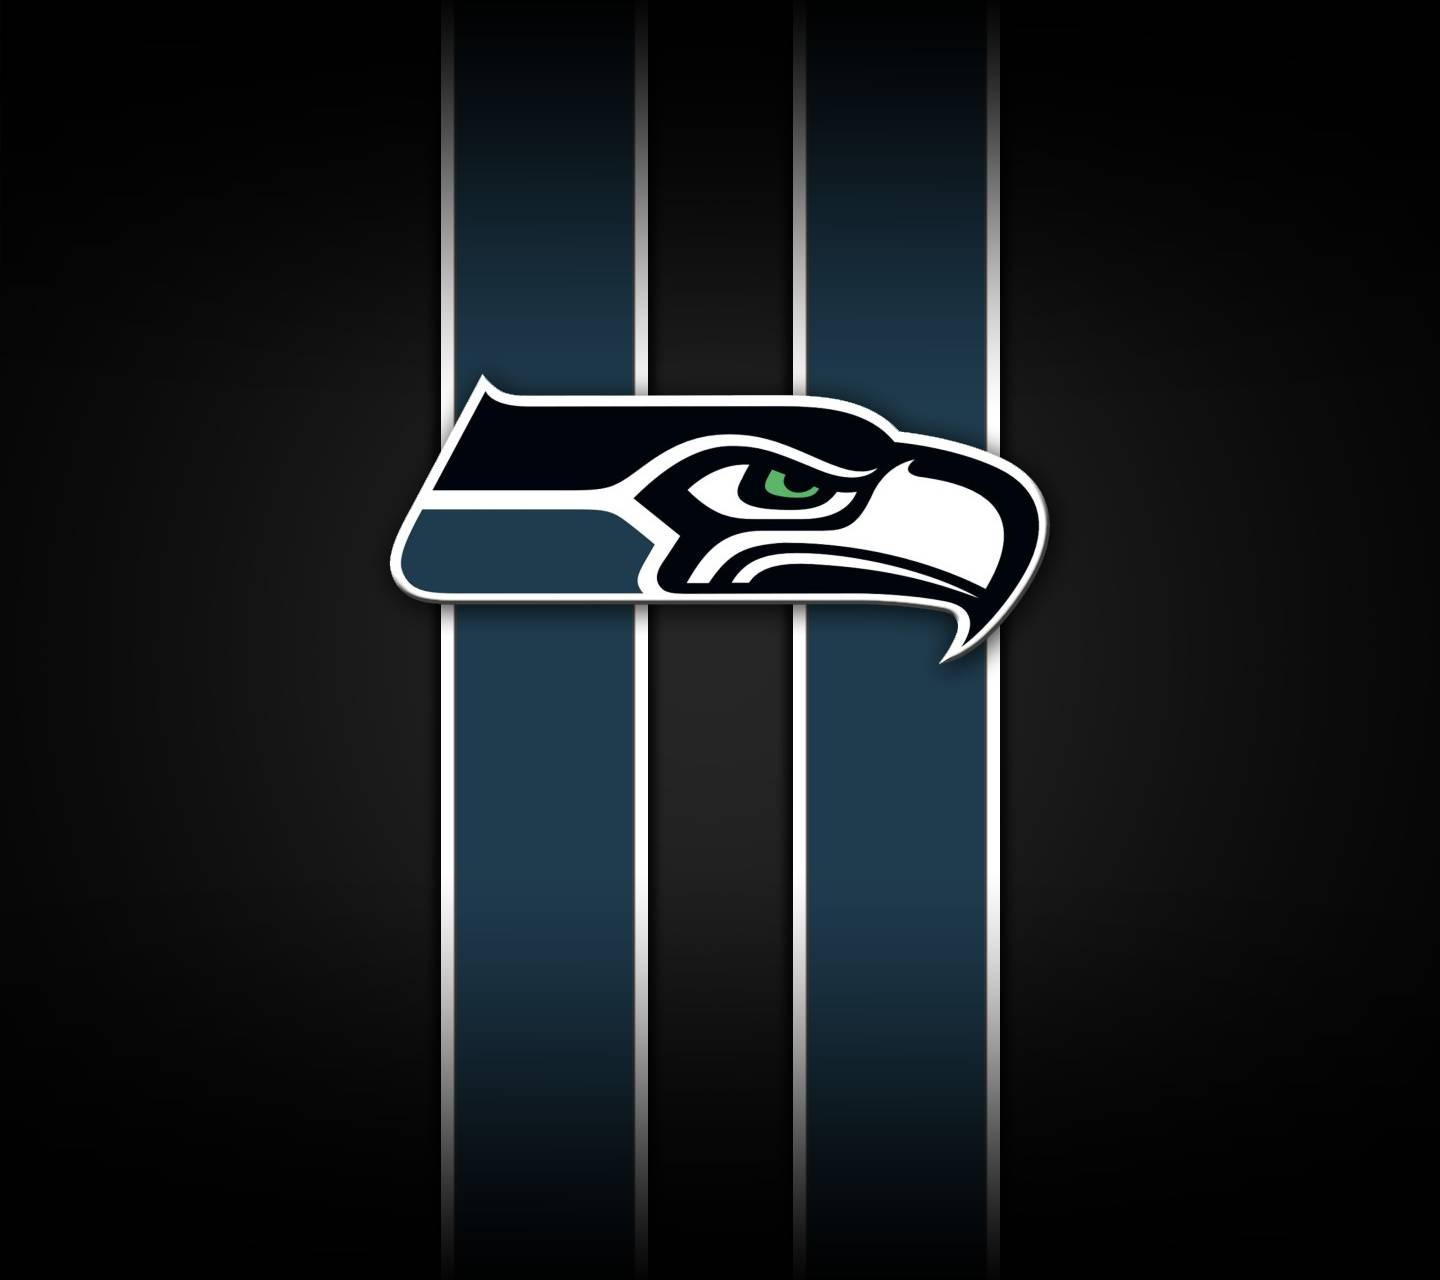 Seattle Seahawks Wallpaper By Aka Jace 95 Free On Zedge